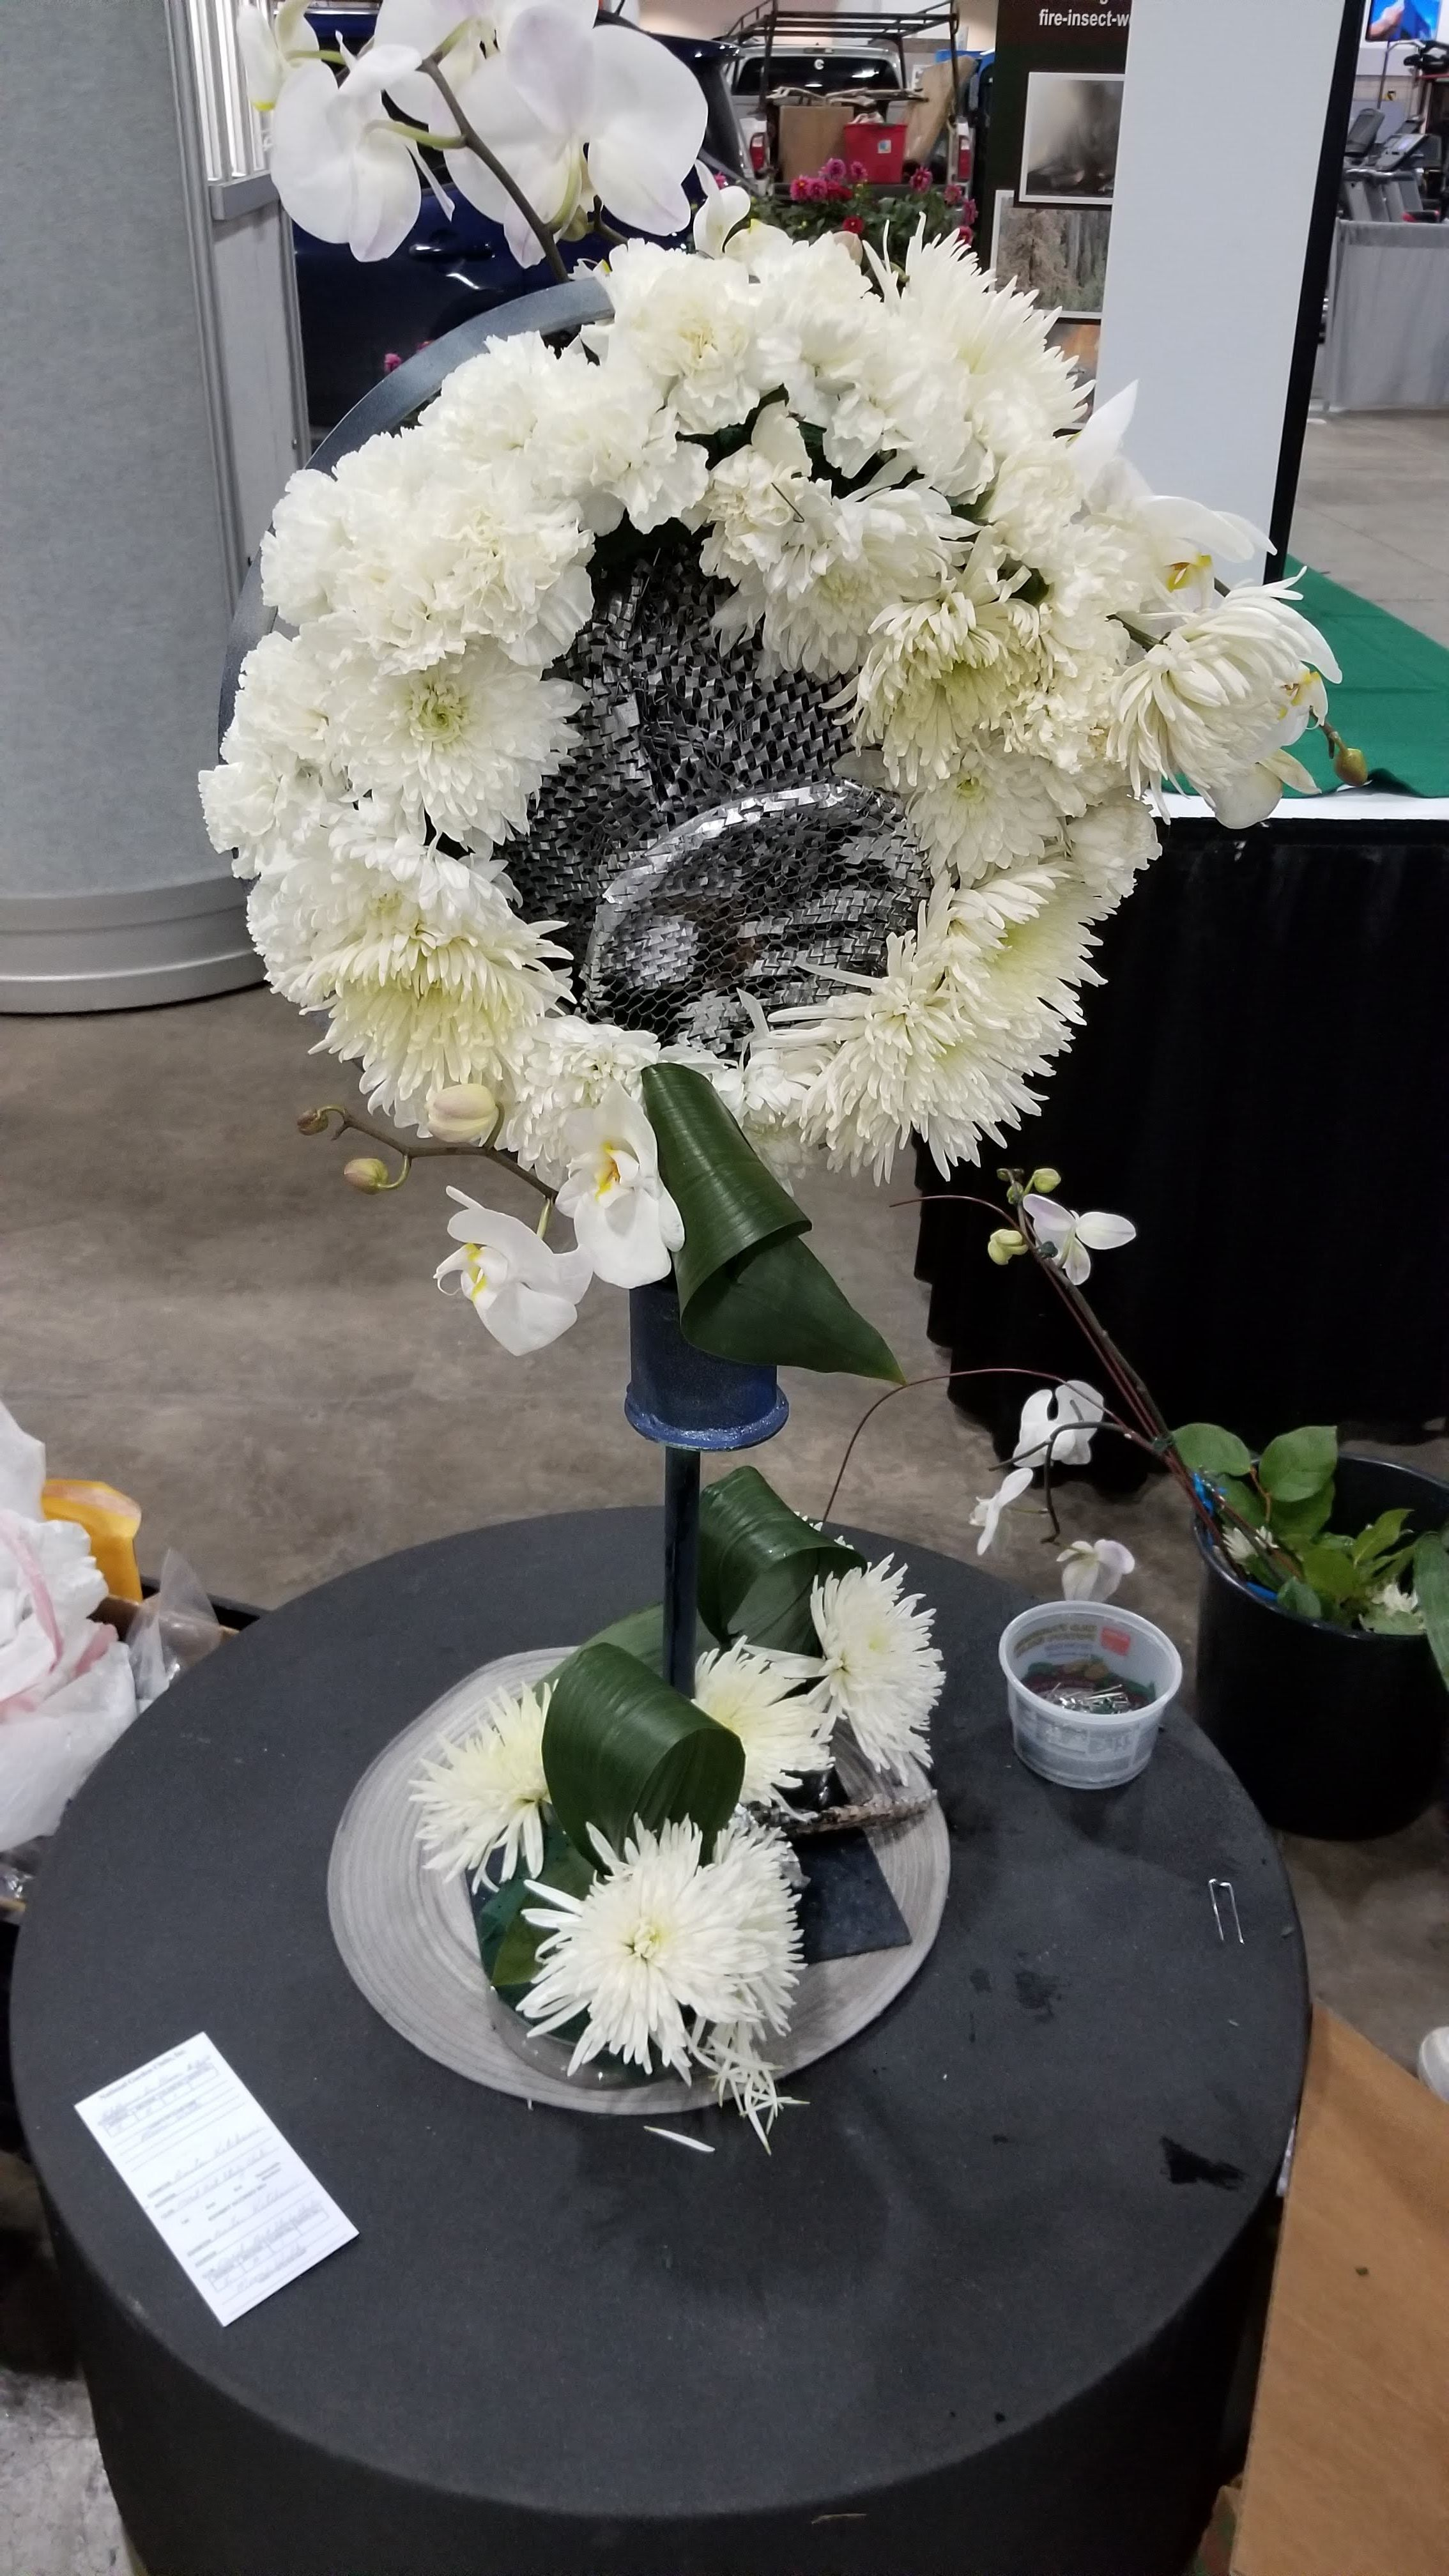 Pin by CO Federation of Garden Clubs on Flower Show 2019